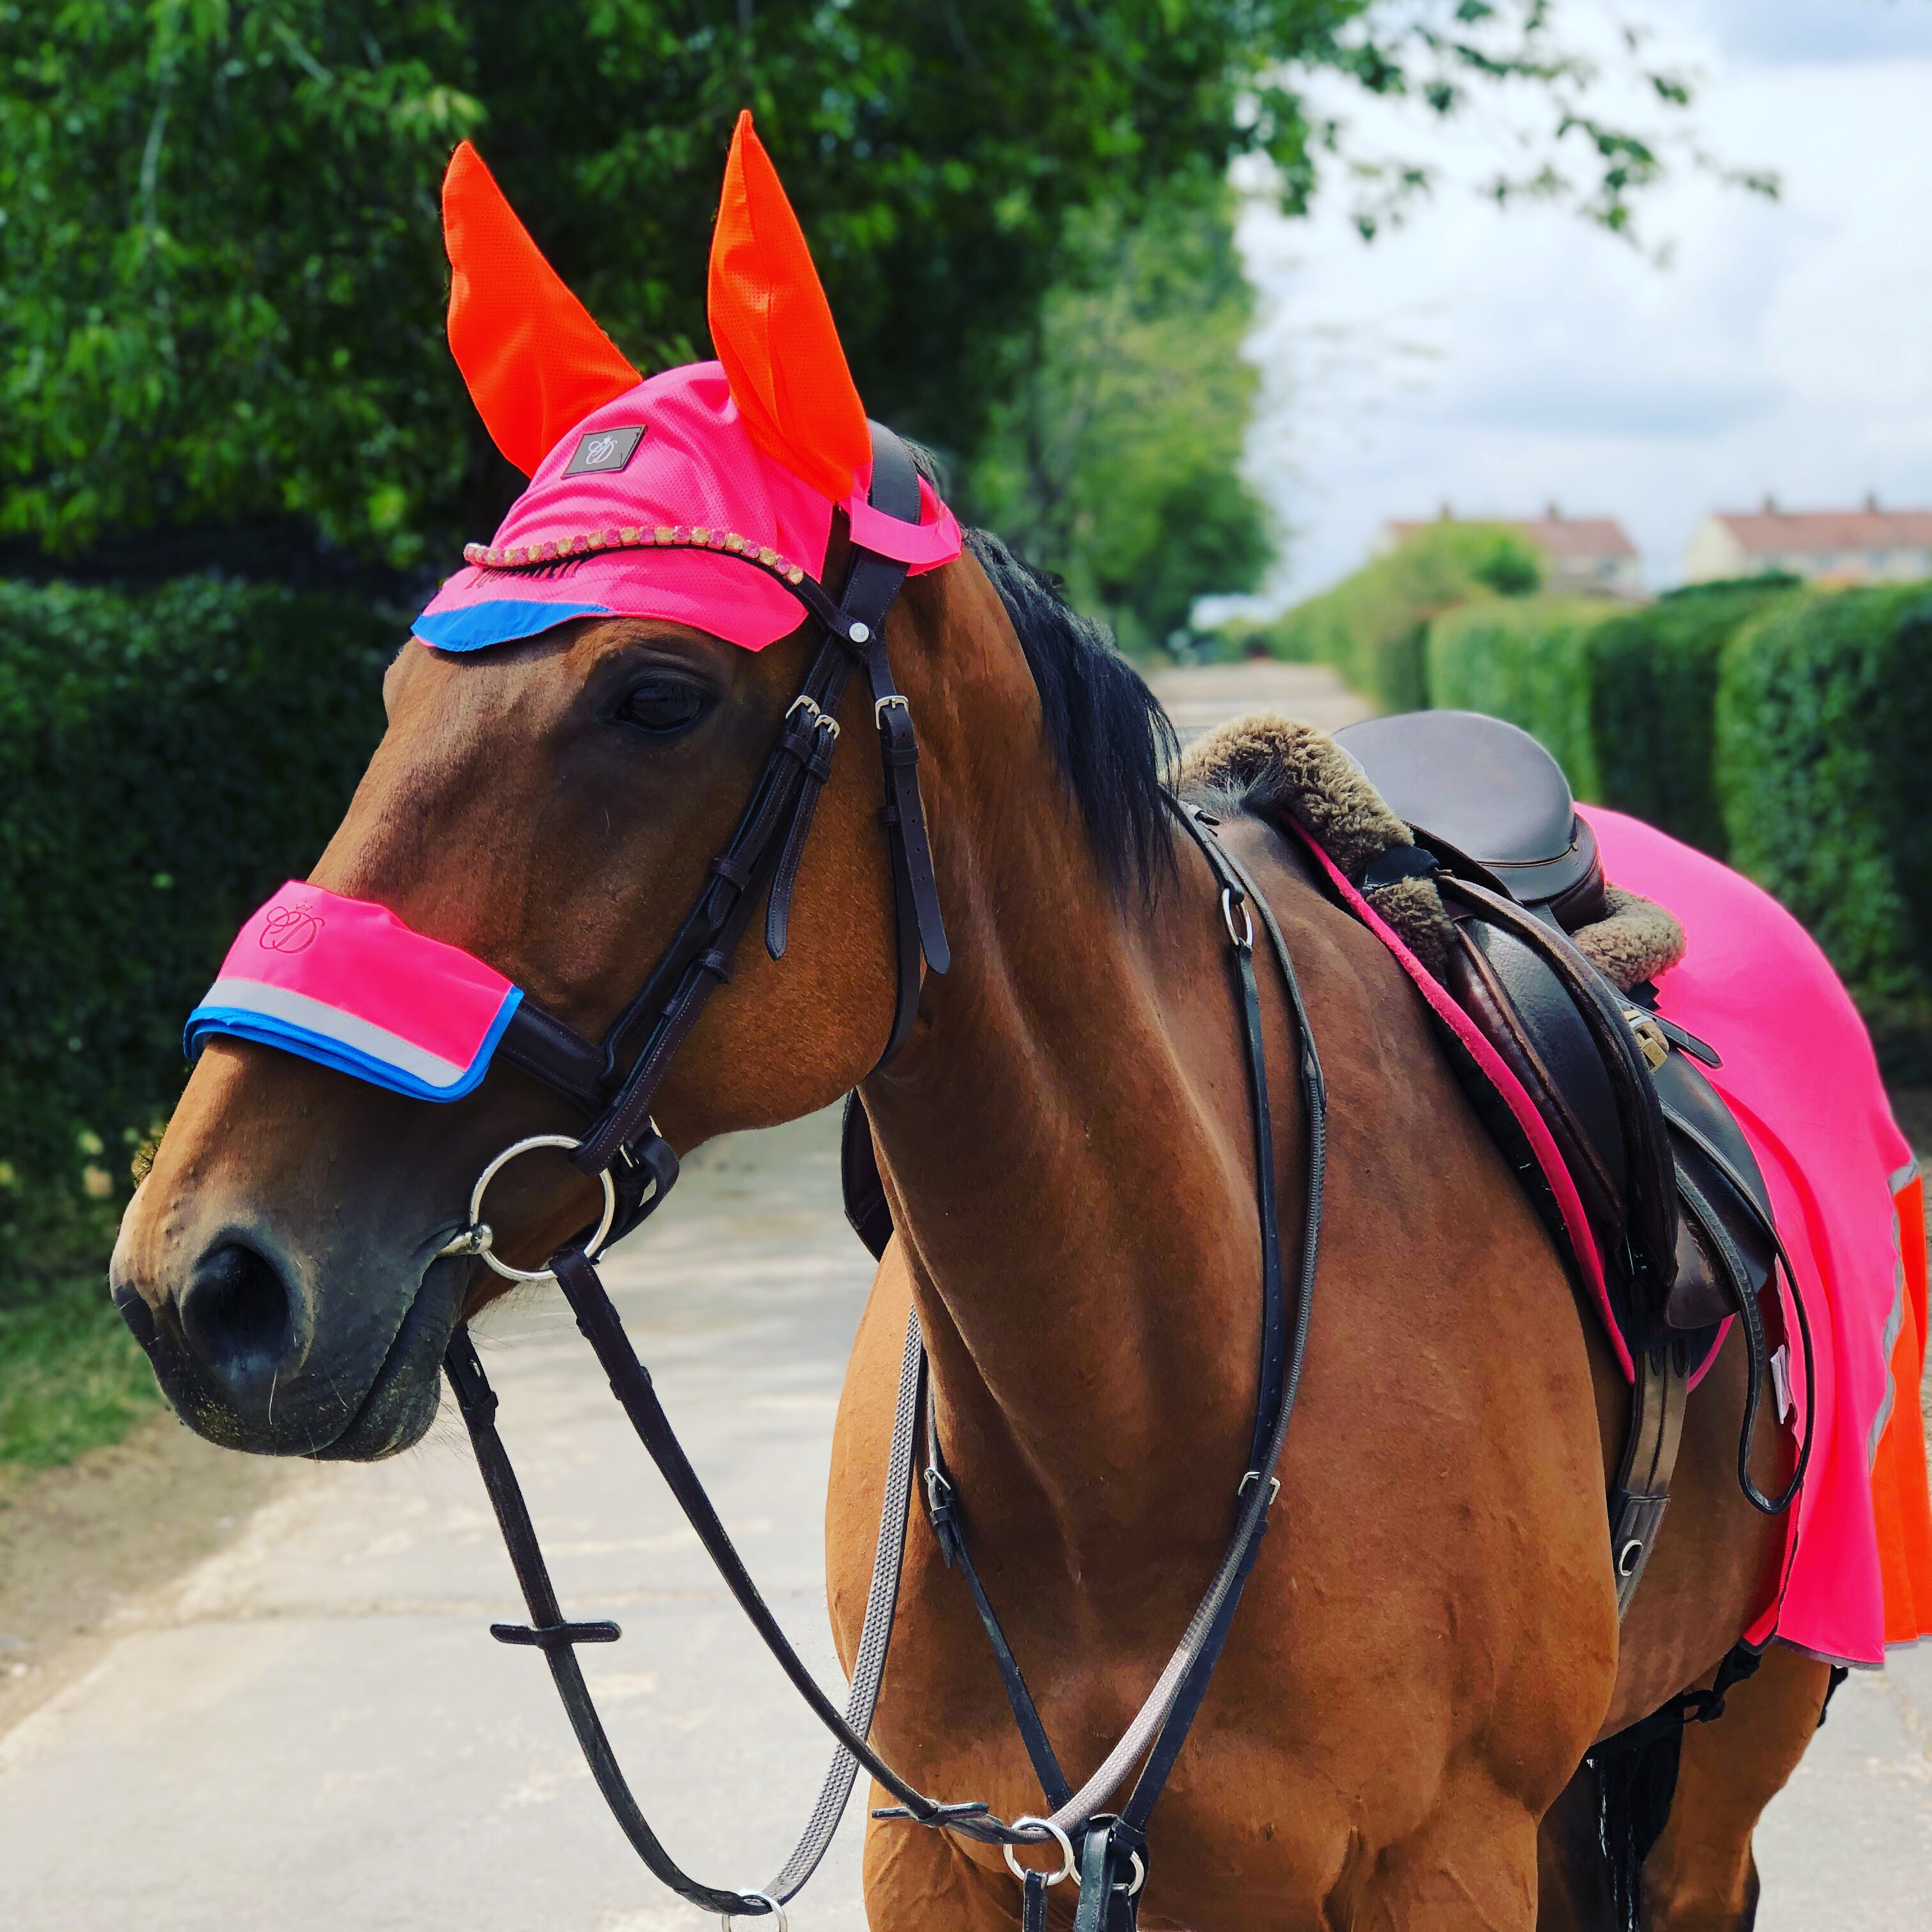 How To Stay Safe & Stay Seen With Equisafety HiViz